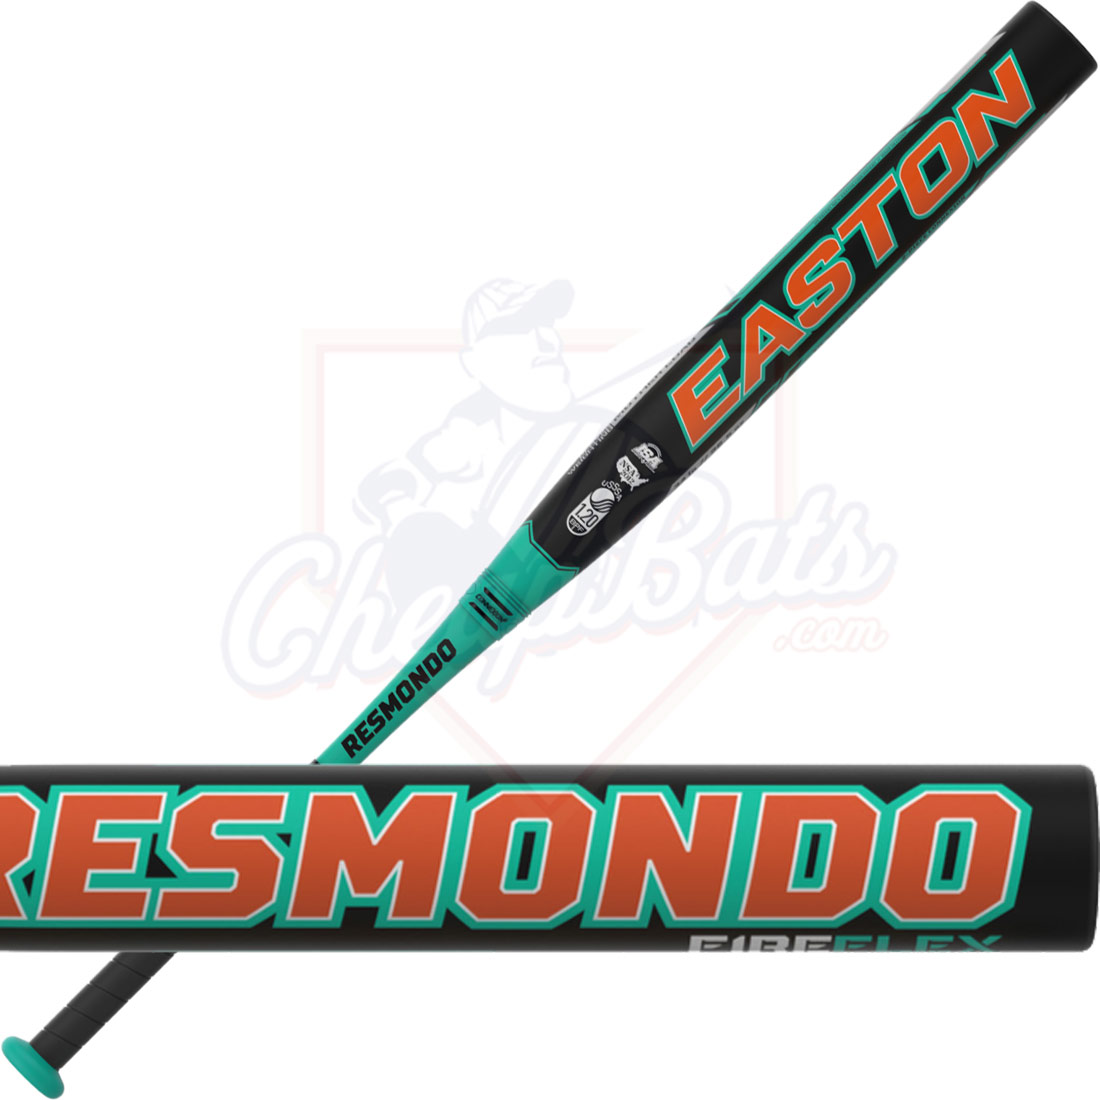 2020 Easton Resmondo Fire Flex Slowpitch Softball Bat Mother Loaded USSSA SP20RESML